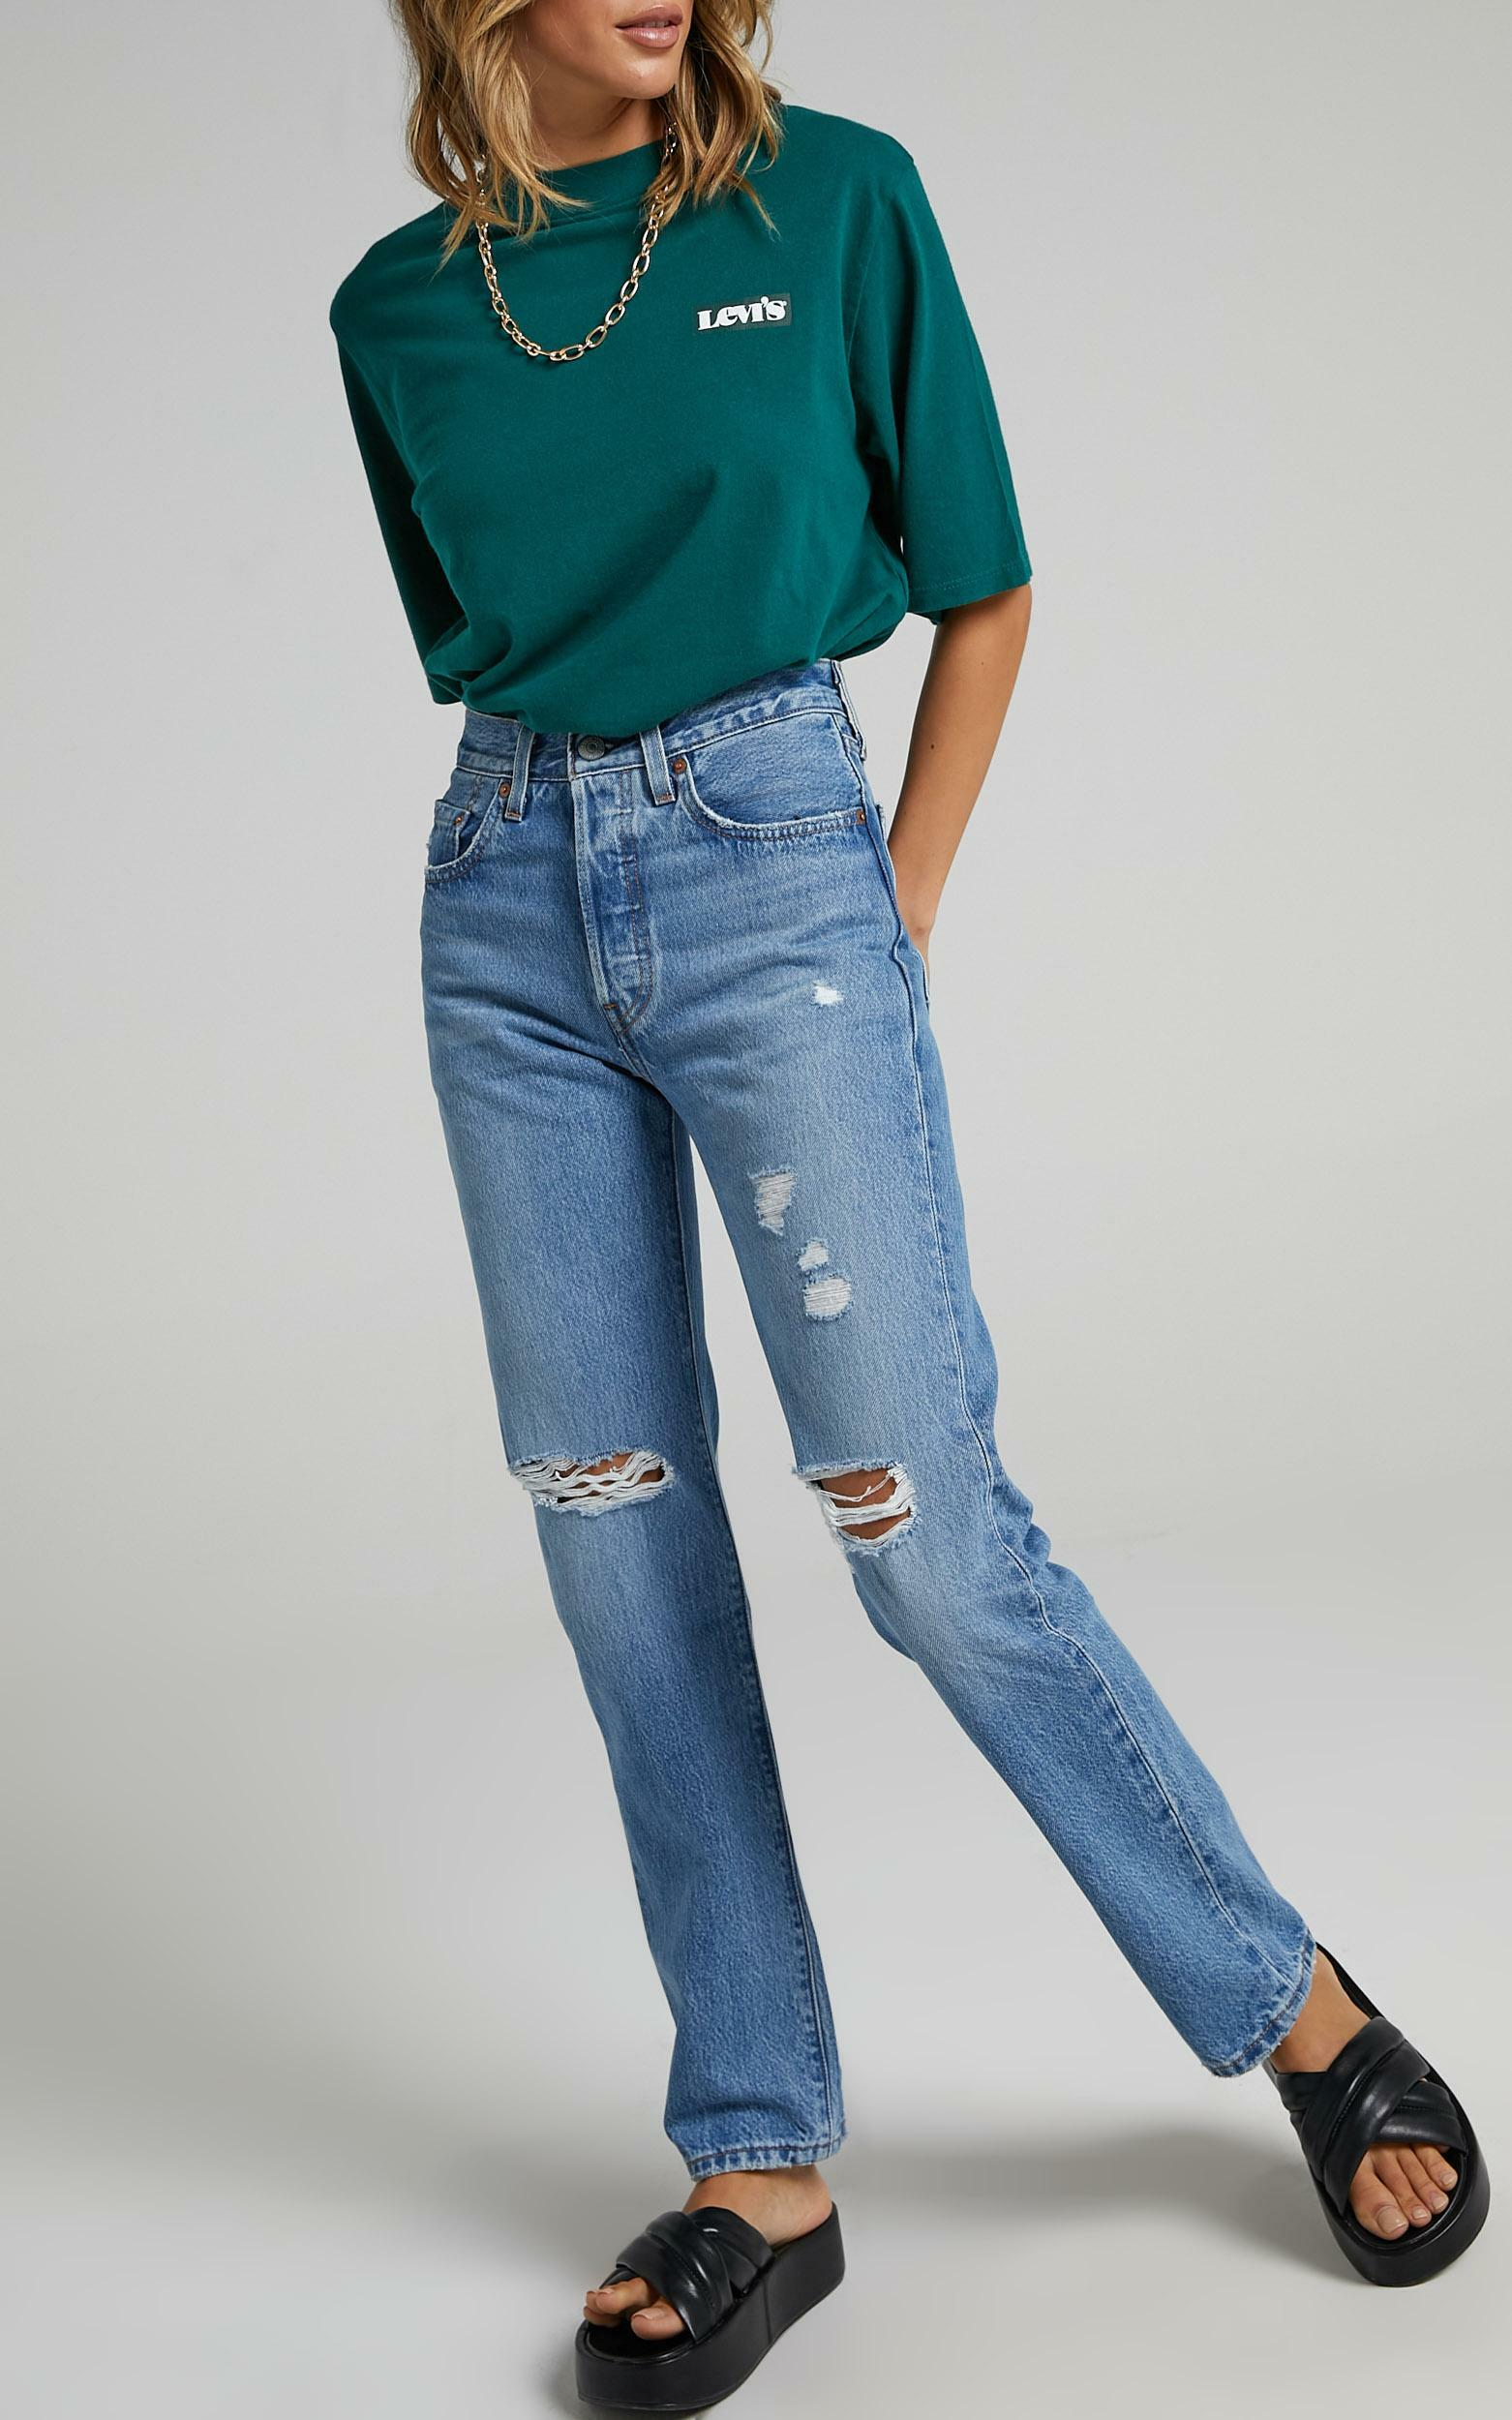 Levis - 501 Jeans in Athens Crown Decon - 06, BLU1, hi-res image number null